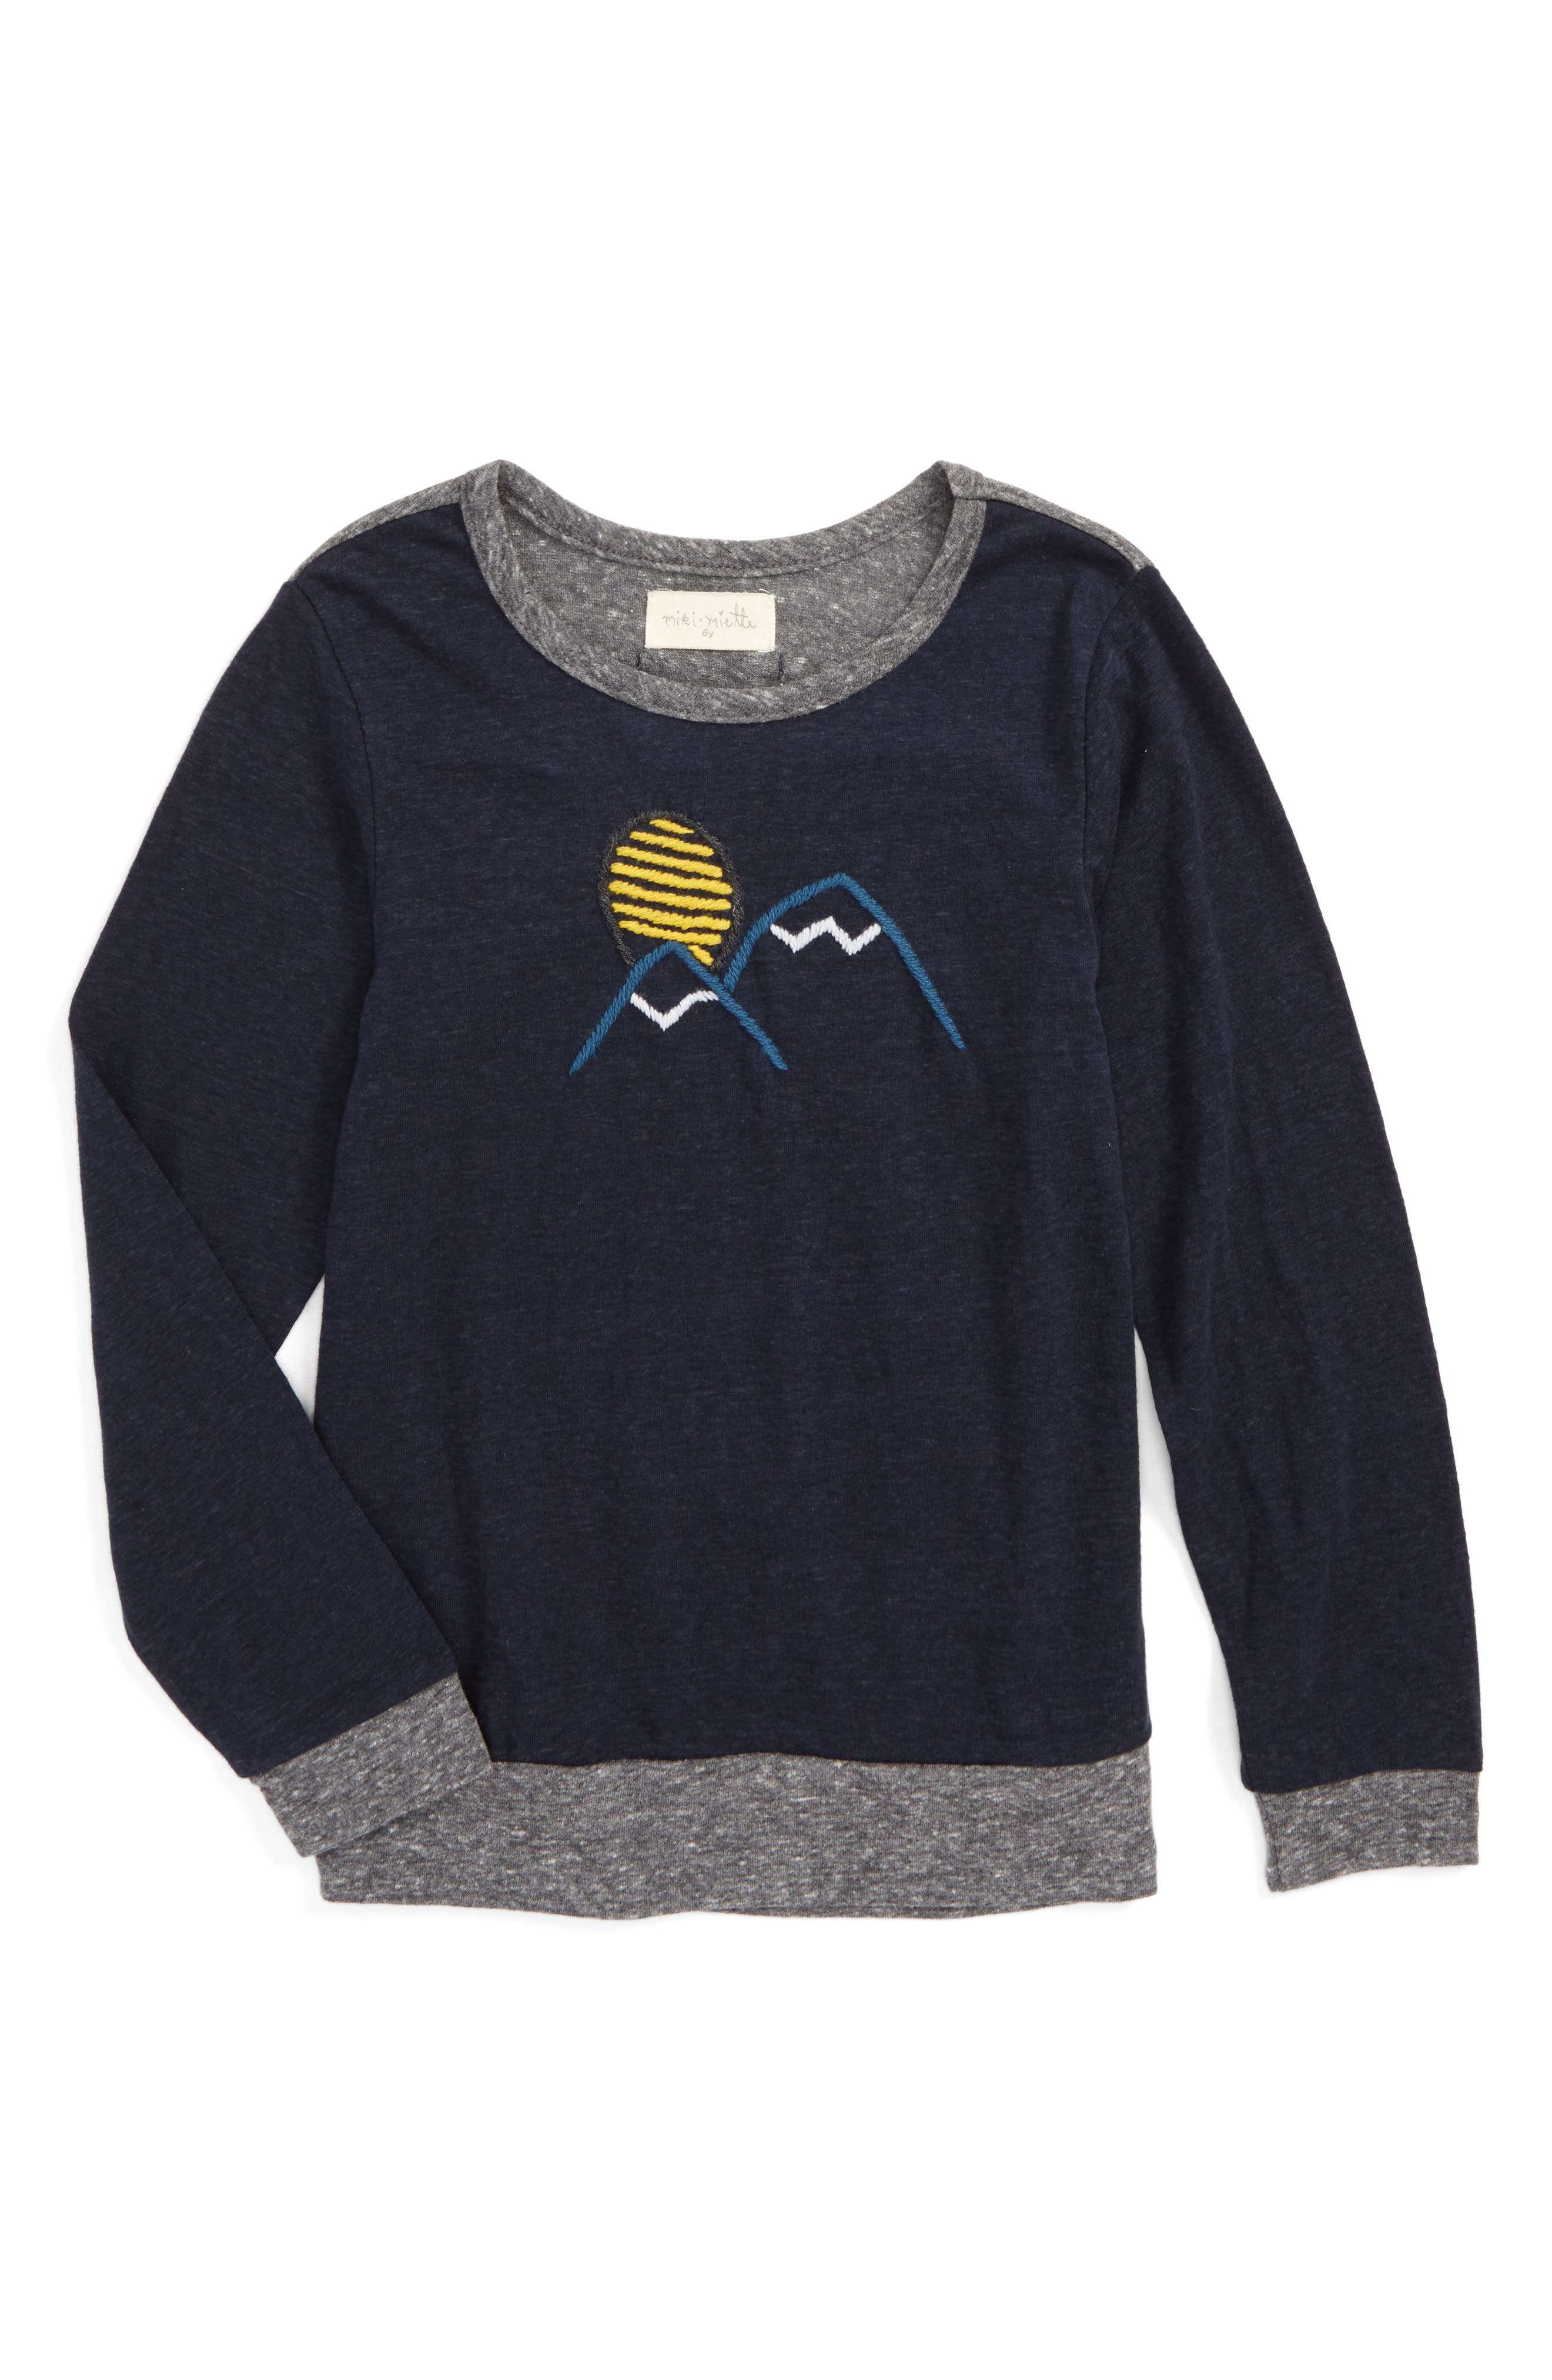 Main Image - Miki Miette Sam Embroidered T-Shirt (Toddler Boys, Little Boys & Big Boys)